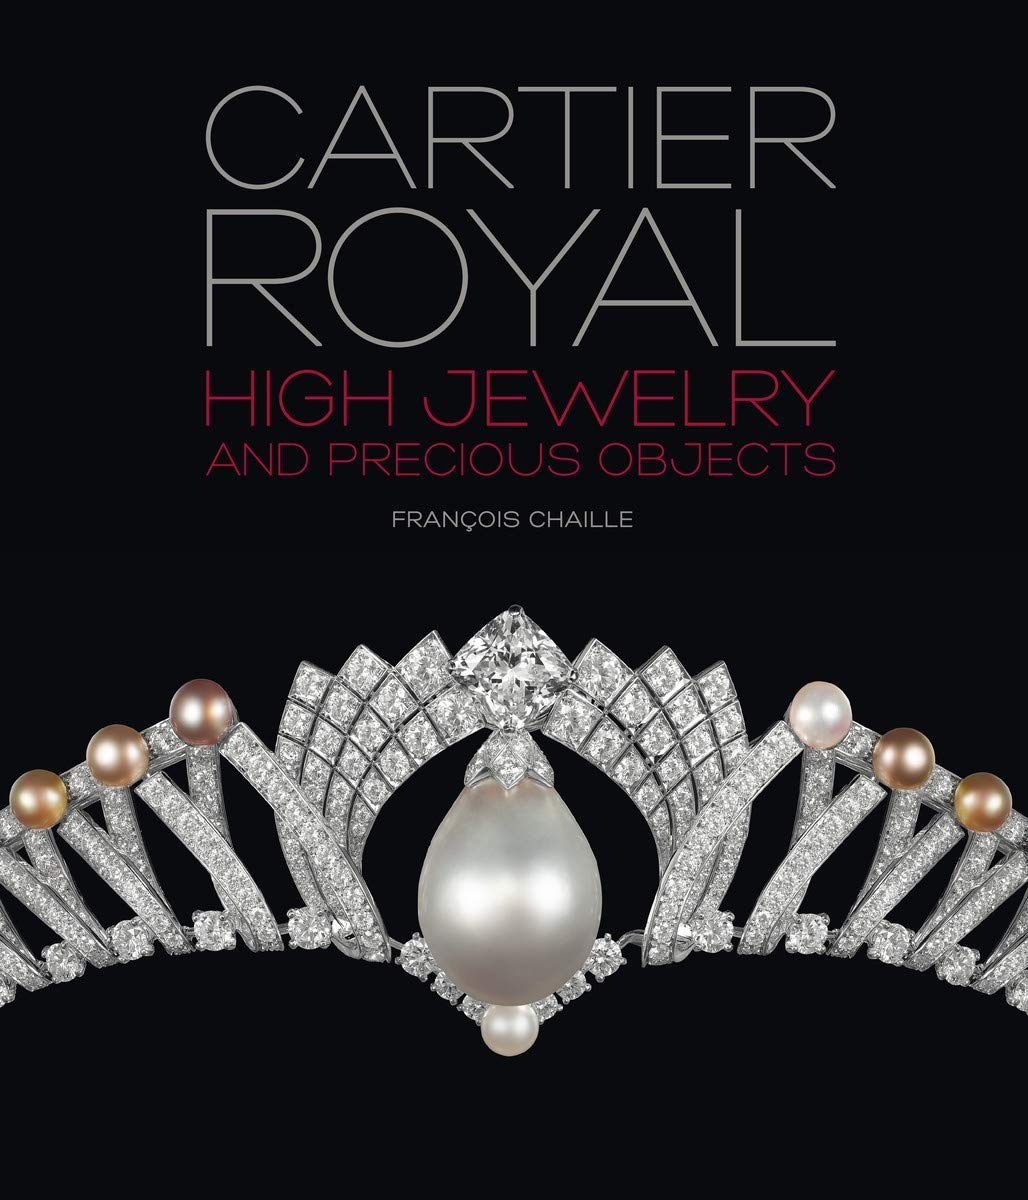 Cartier Royal  High Jewelry And Precious Objects